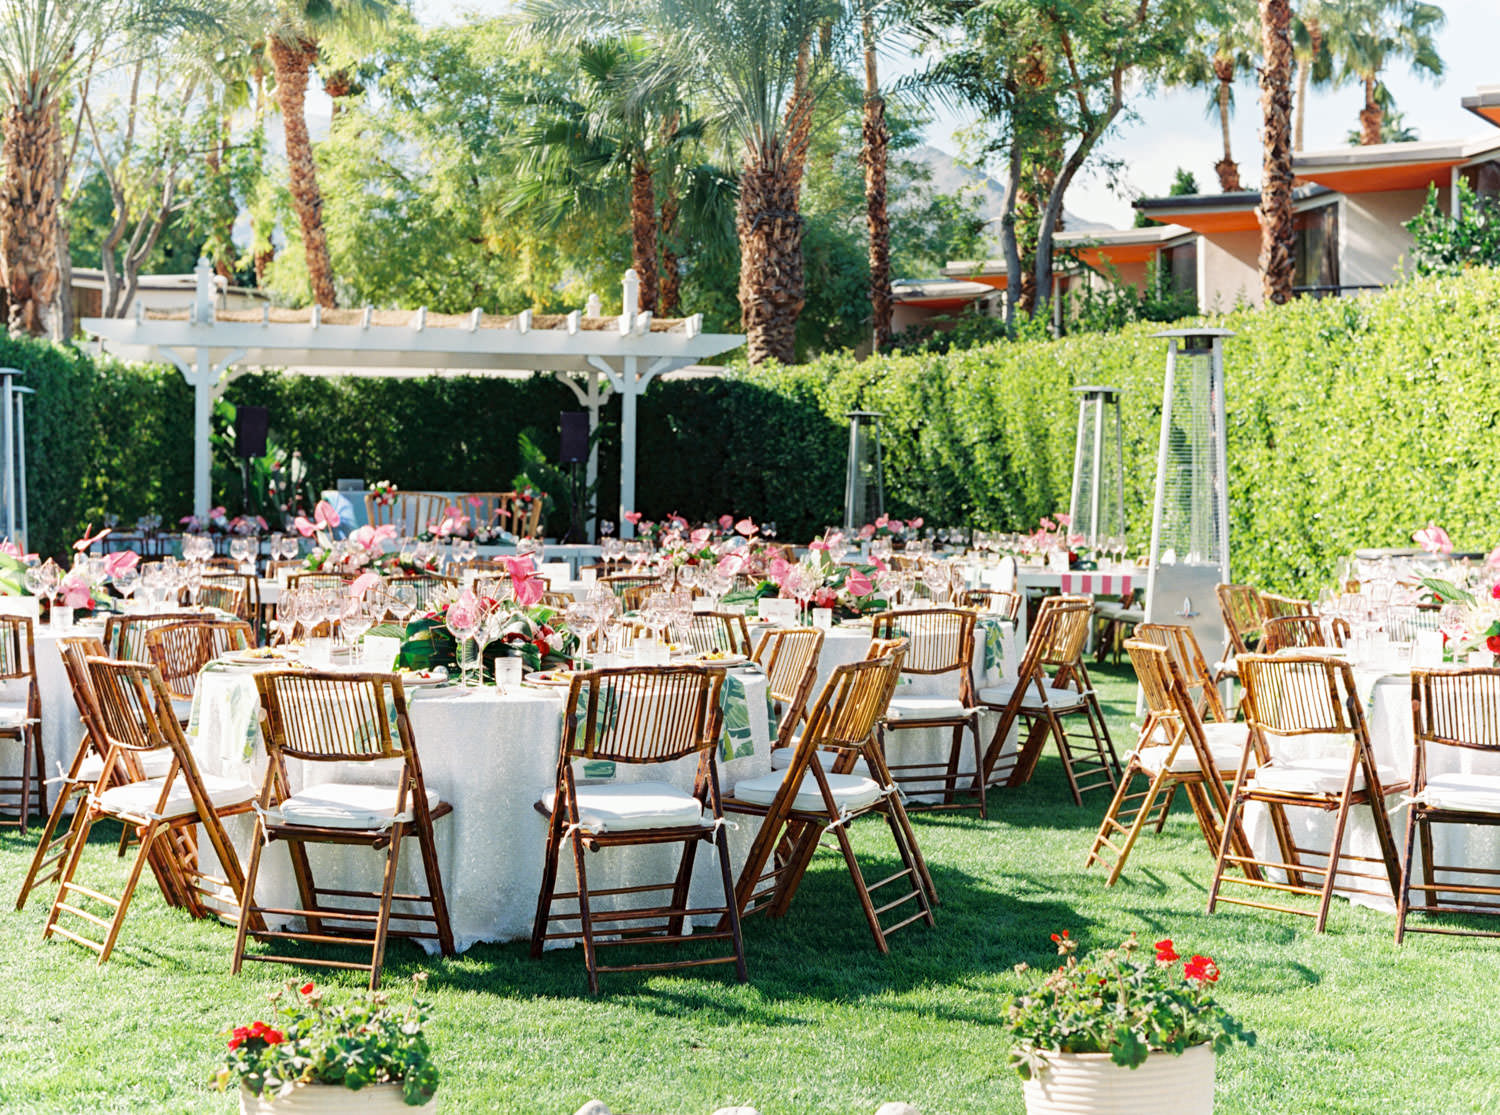 Outdoor Brunch Reception With Round Tables Covered In Sequin Linens, Bamboo  Folding Chairs With White